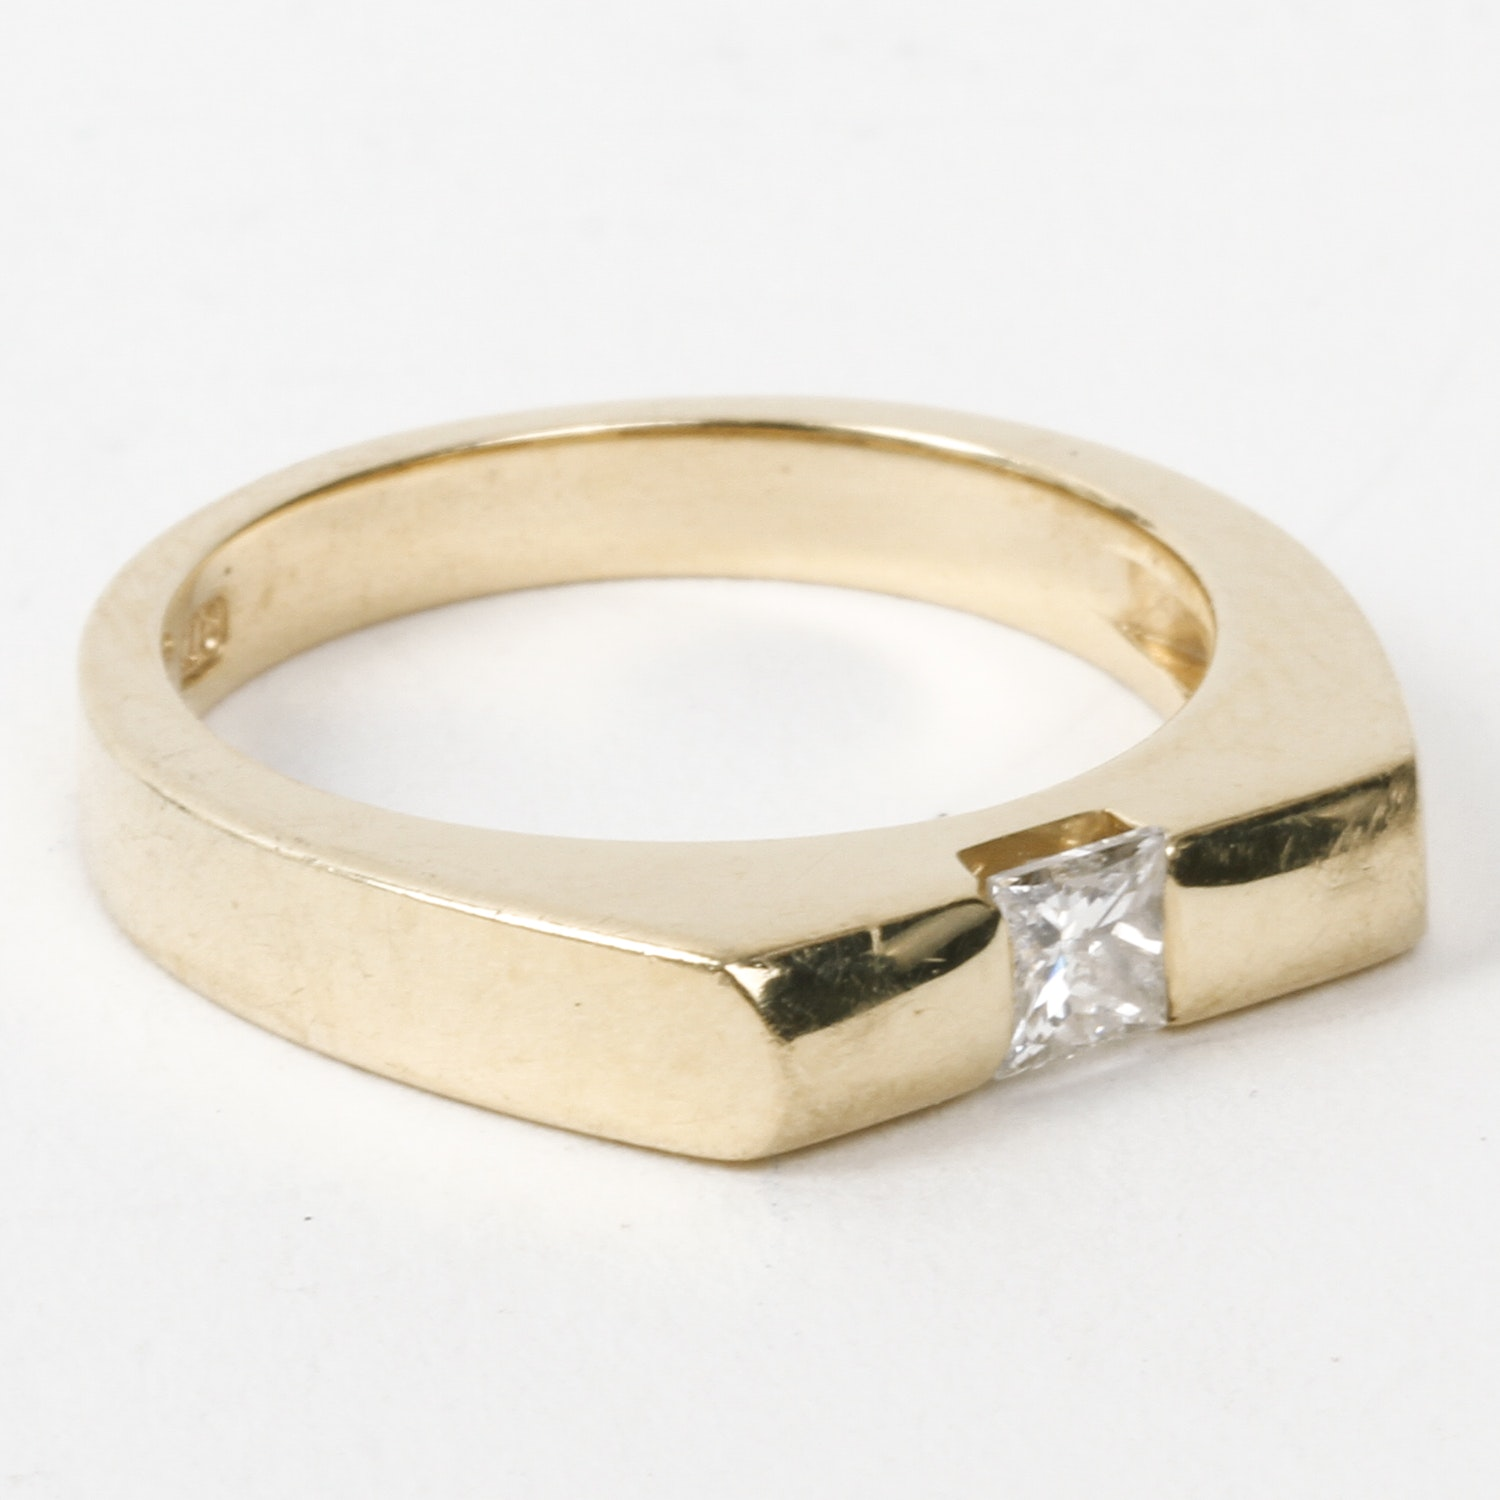 14K Yellow Gold and Solitaire Diamond Flat Top Ring